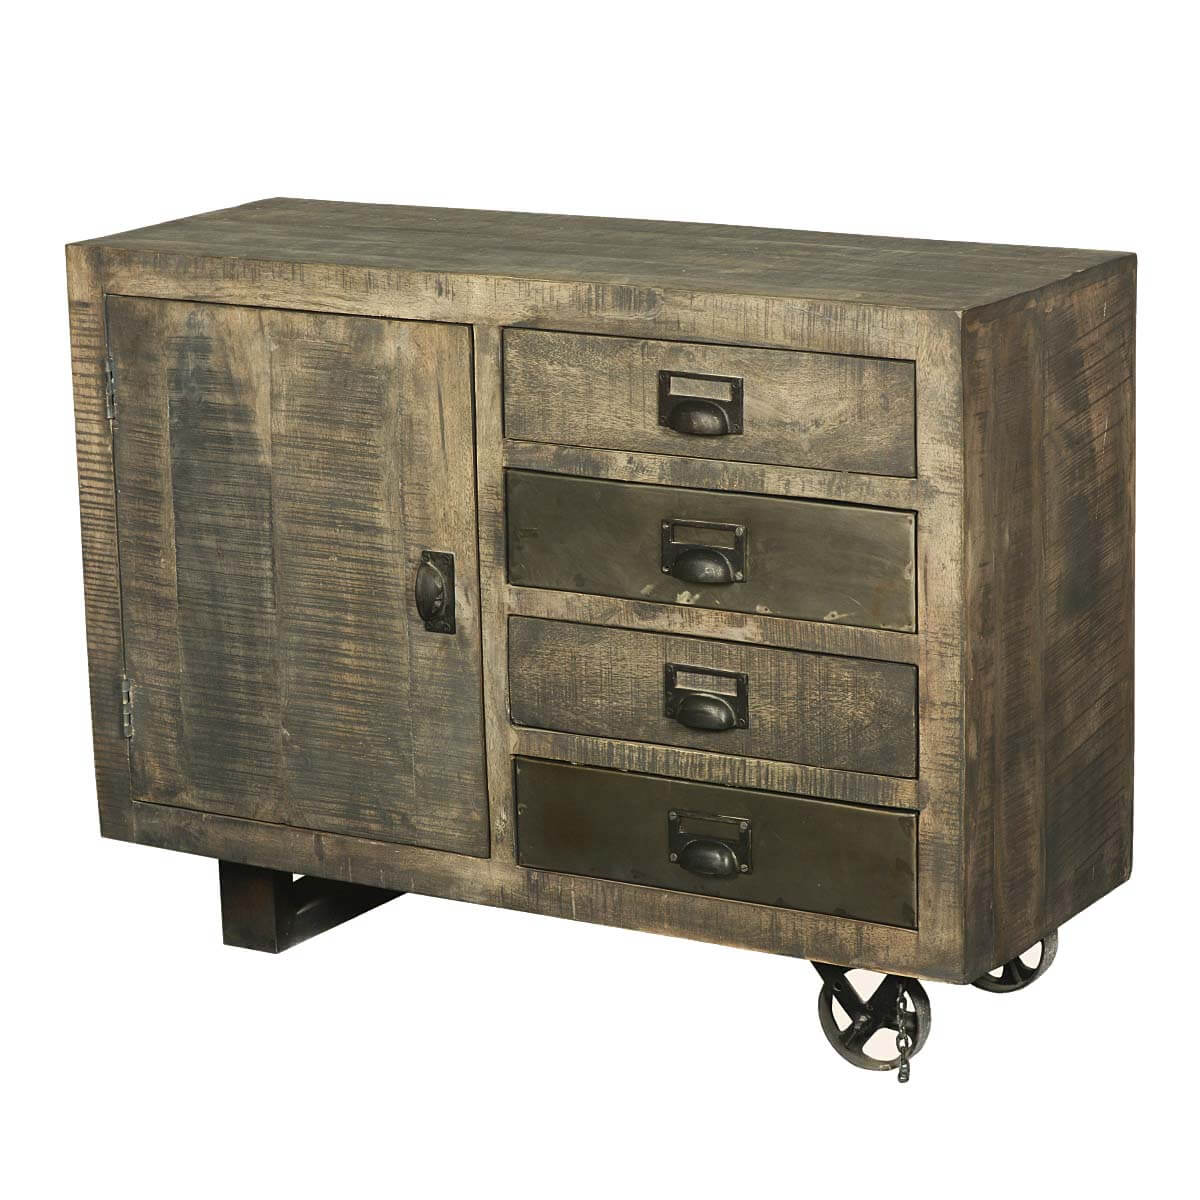 drawers cart rolling picture s trolley p of wheels w homcom cabinet storage microwave with kitchen organize